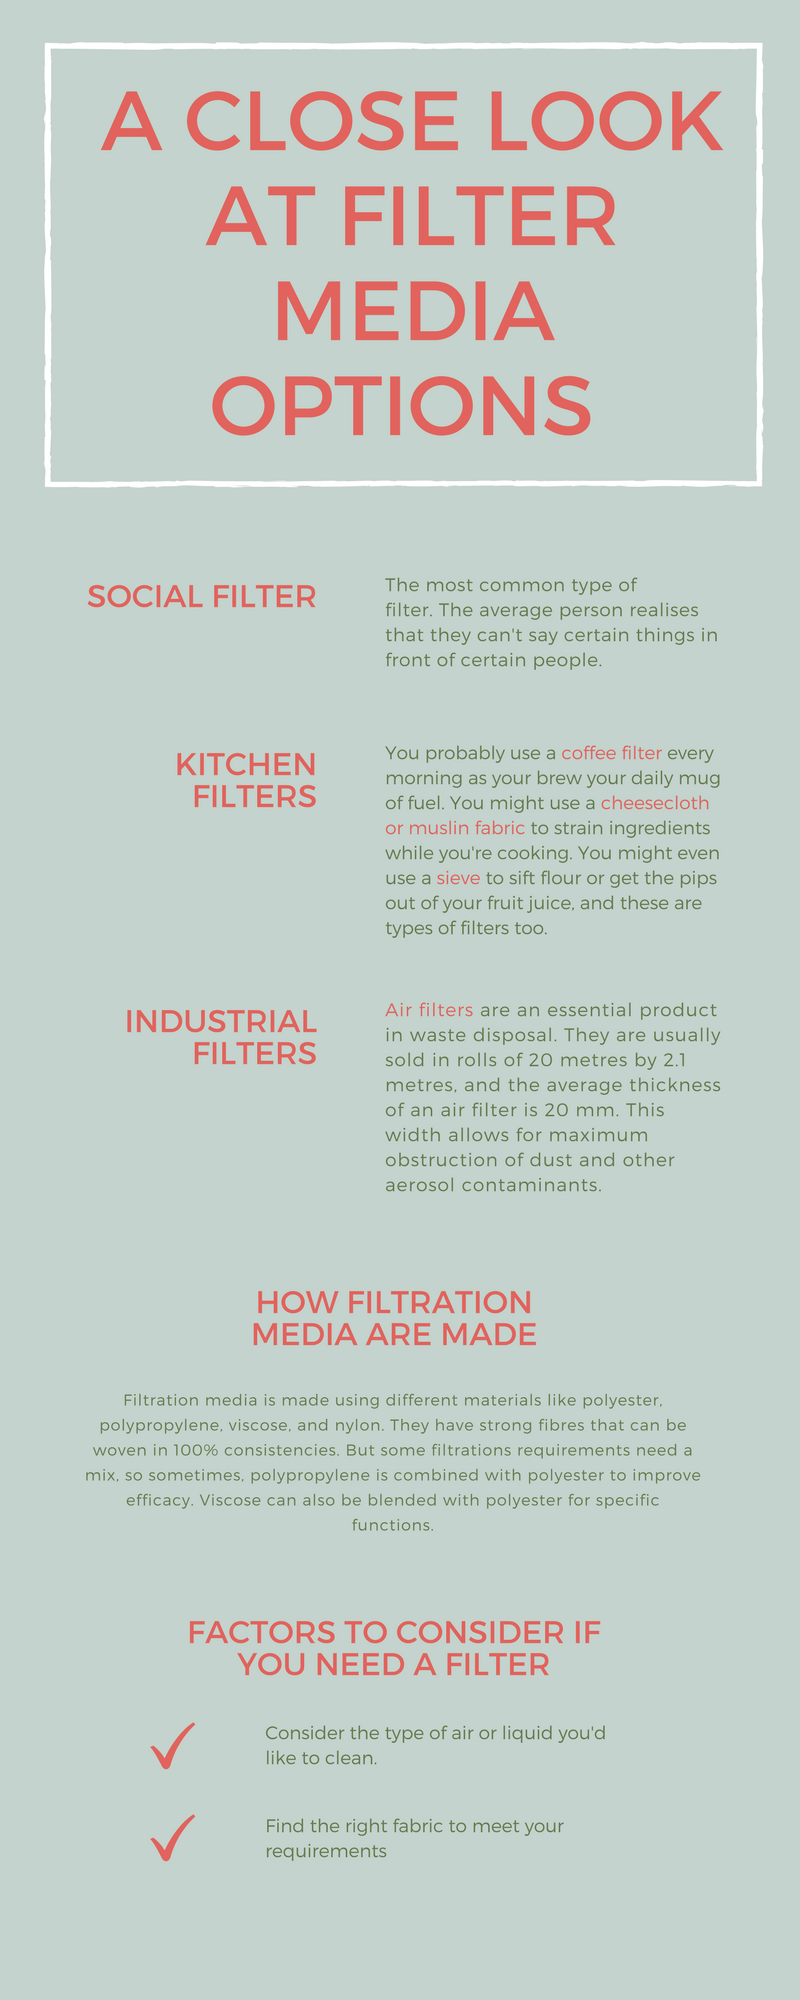 We use different types of filtration medias in our day to day ...